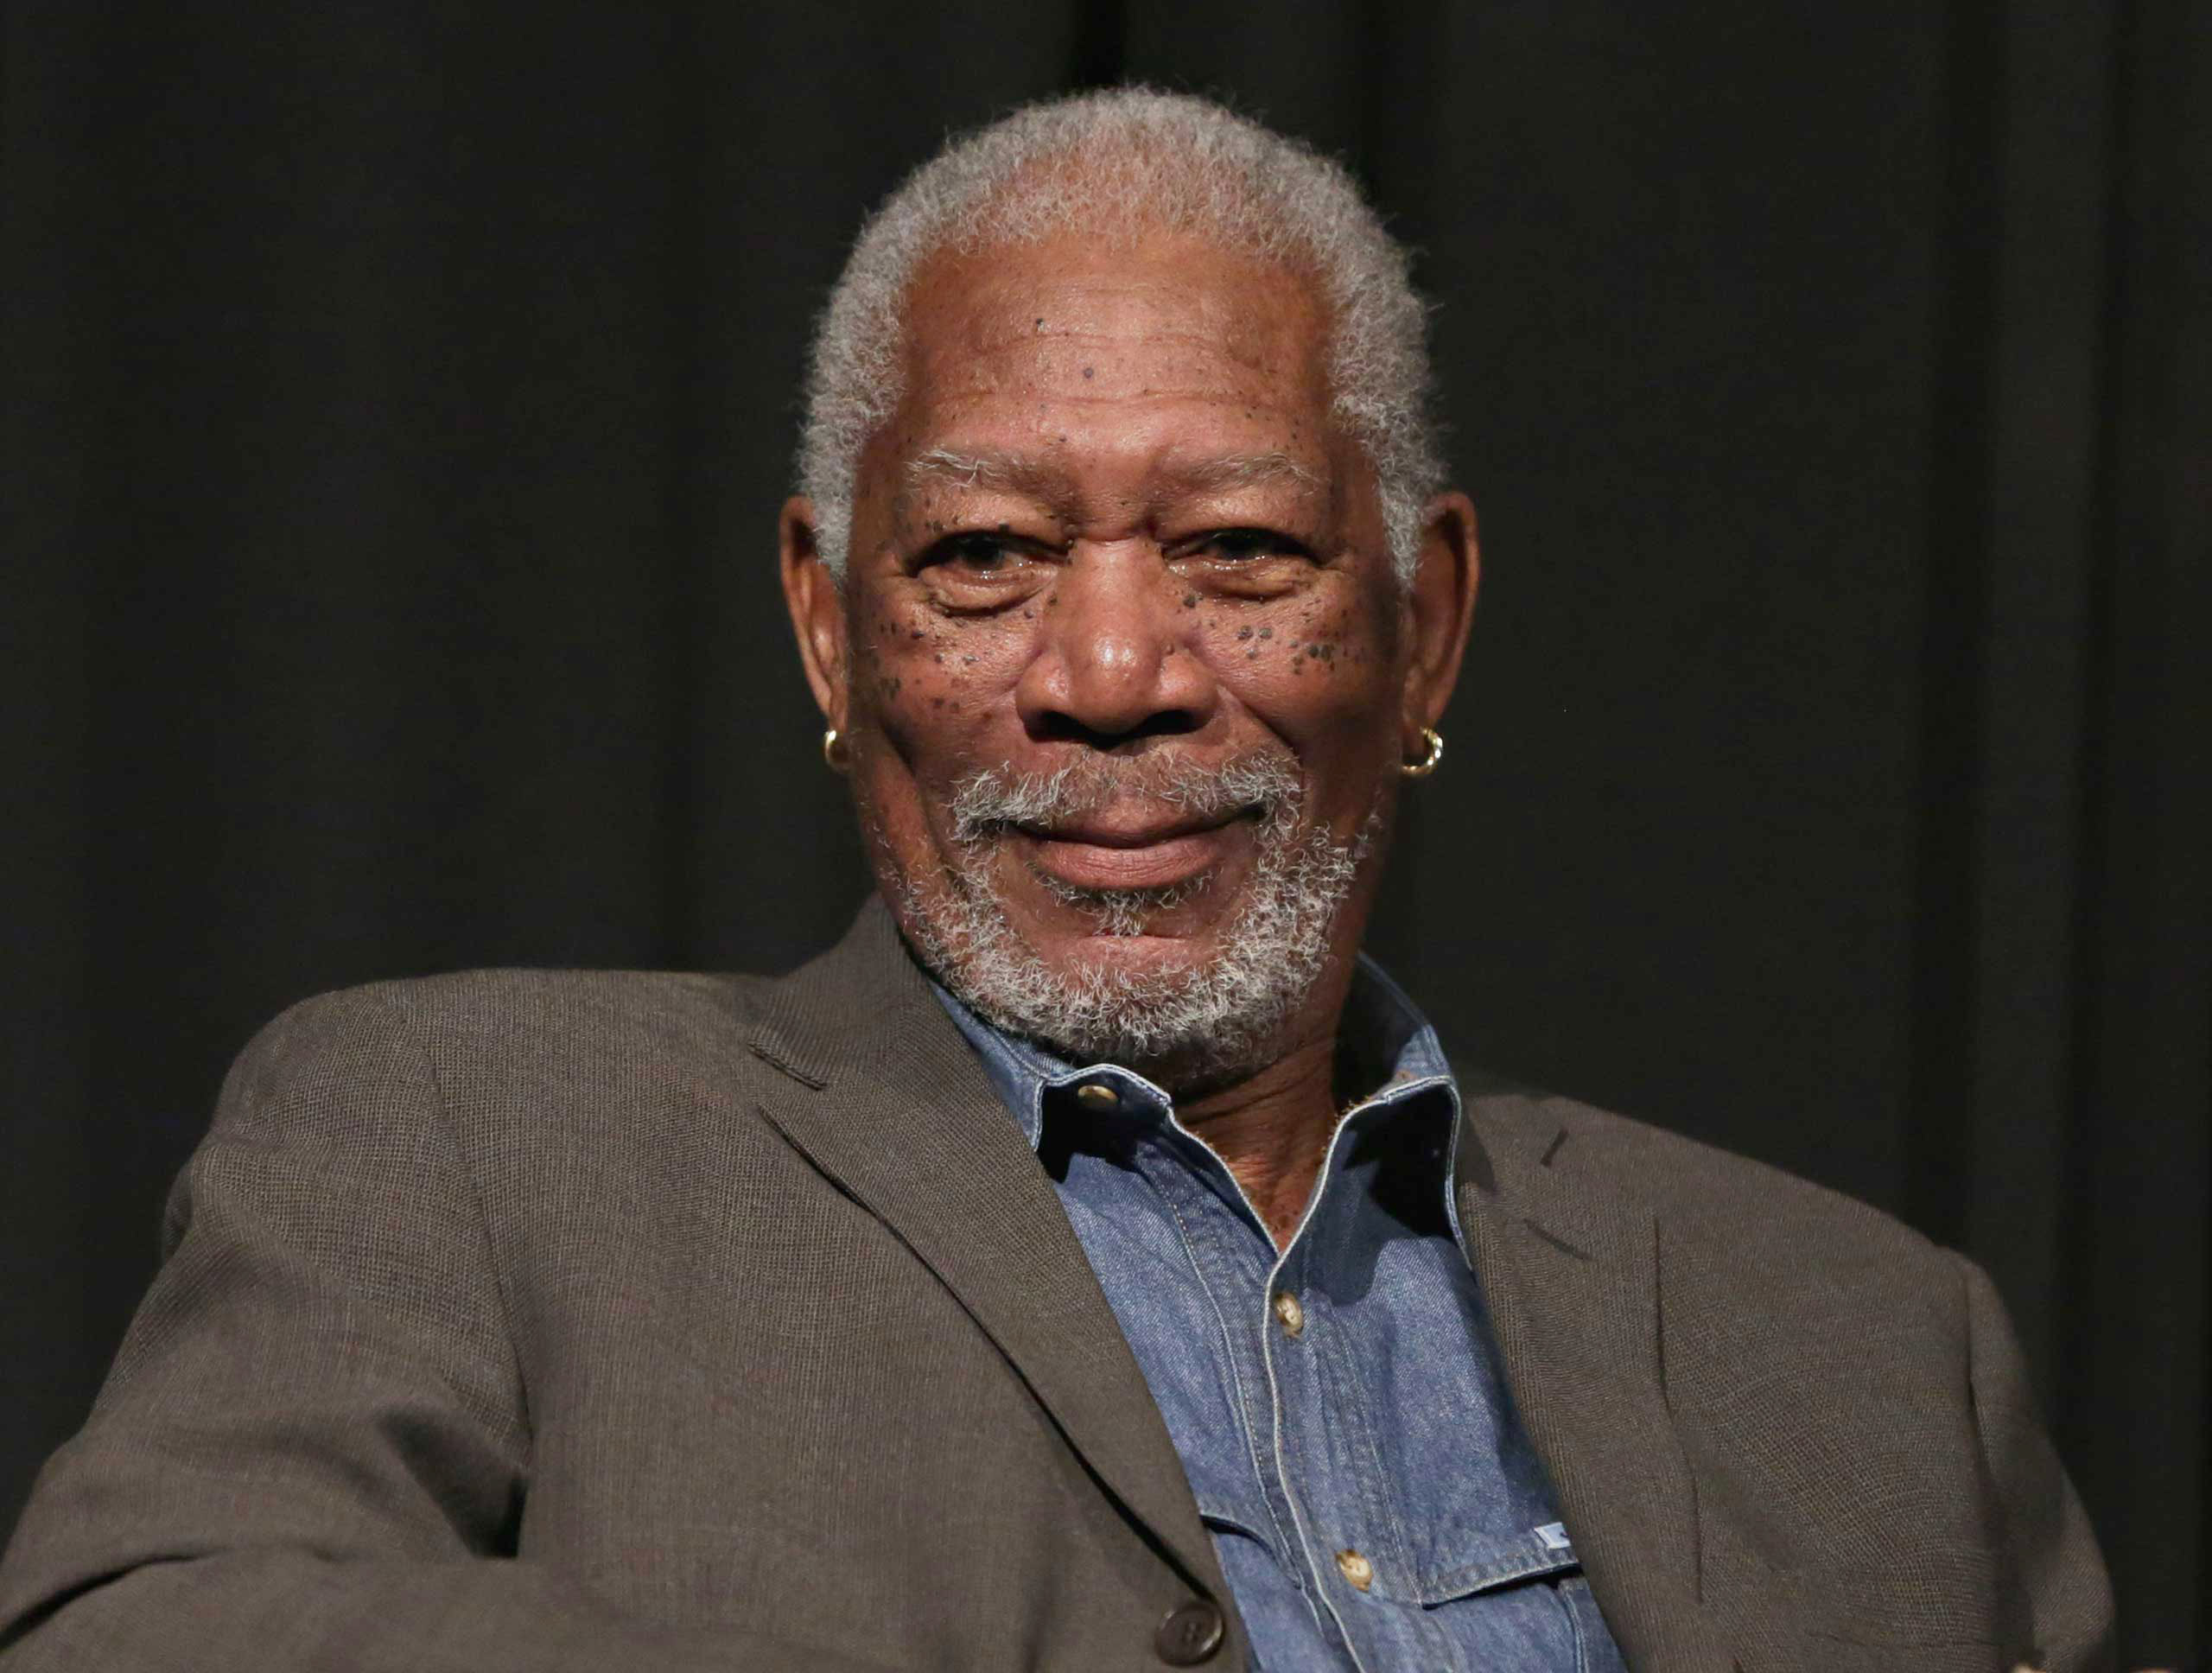 Morgan Freeman takes part in a SiriusXM Town Hall with Morgan Freeman hosted by Entertainment Weekly Radio channel in New York City, on April 30, 2015.